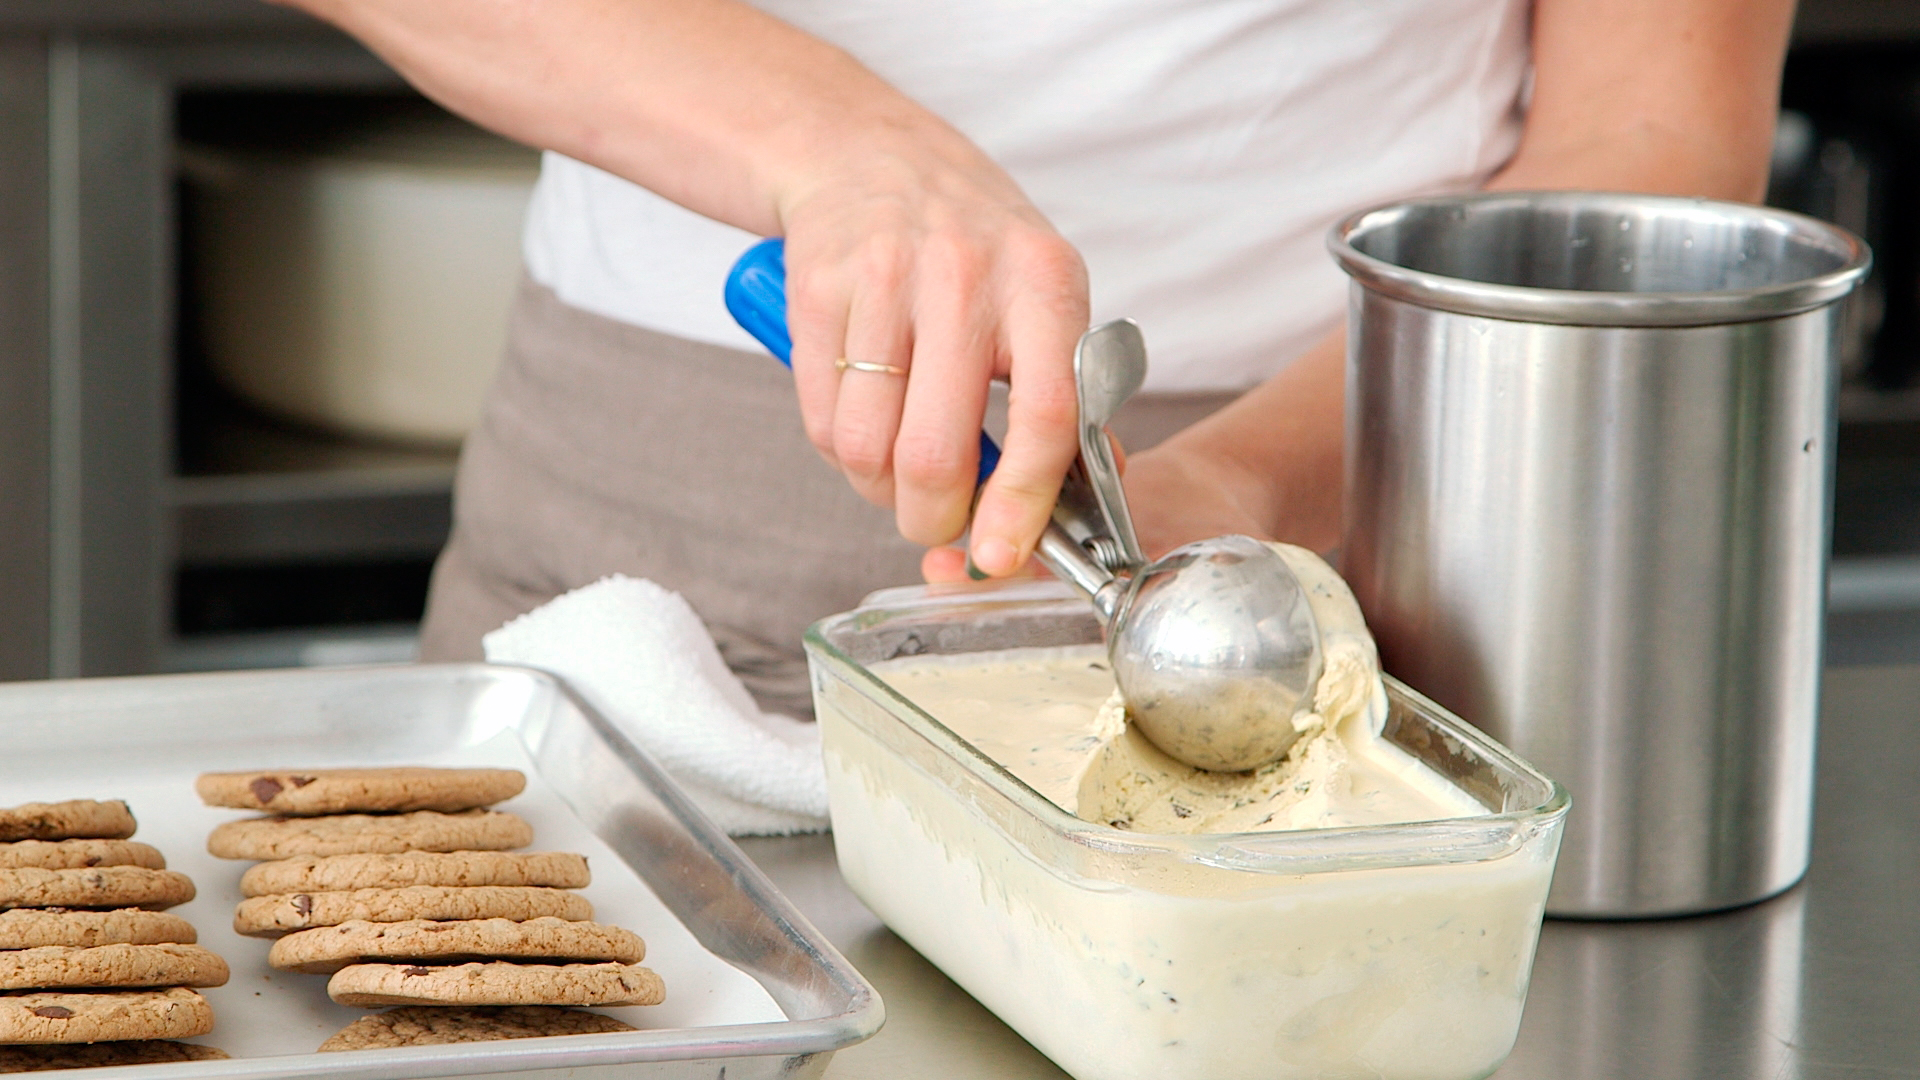 scooping homemade ice-cream from dish